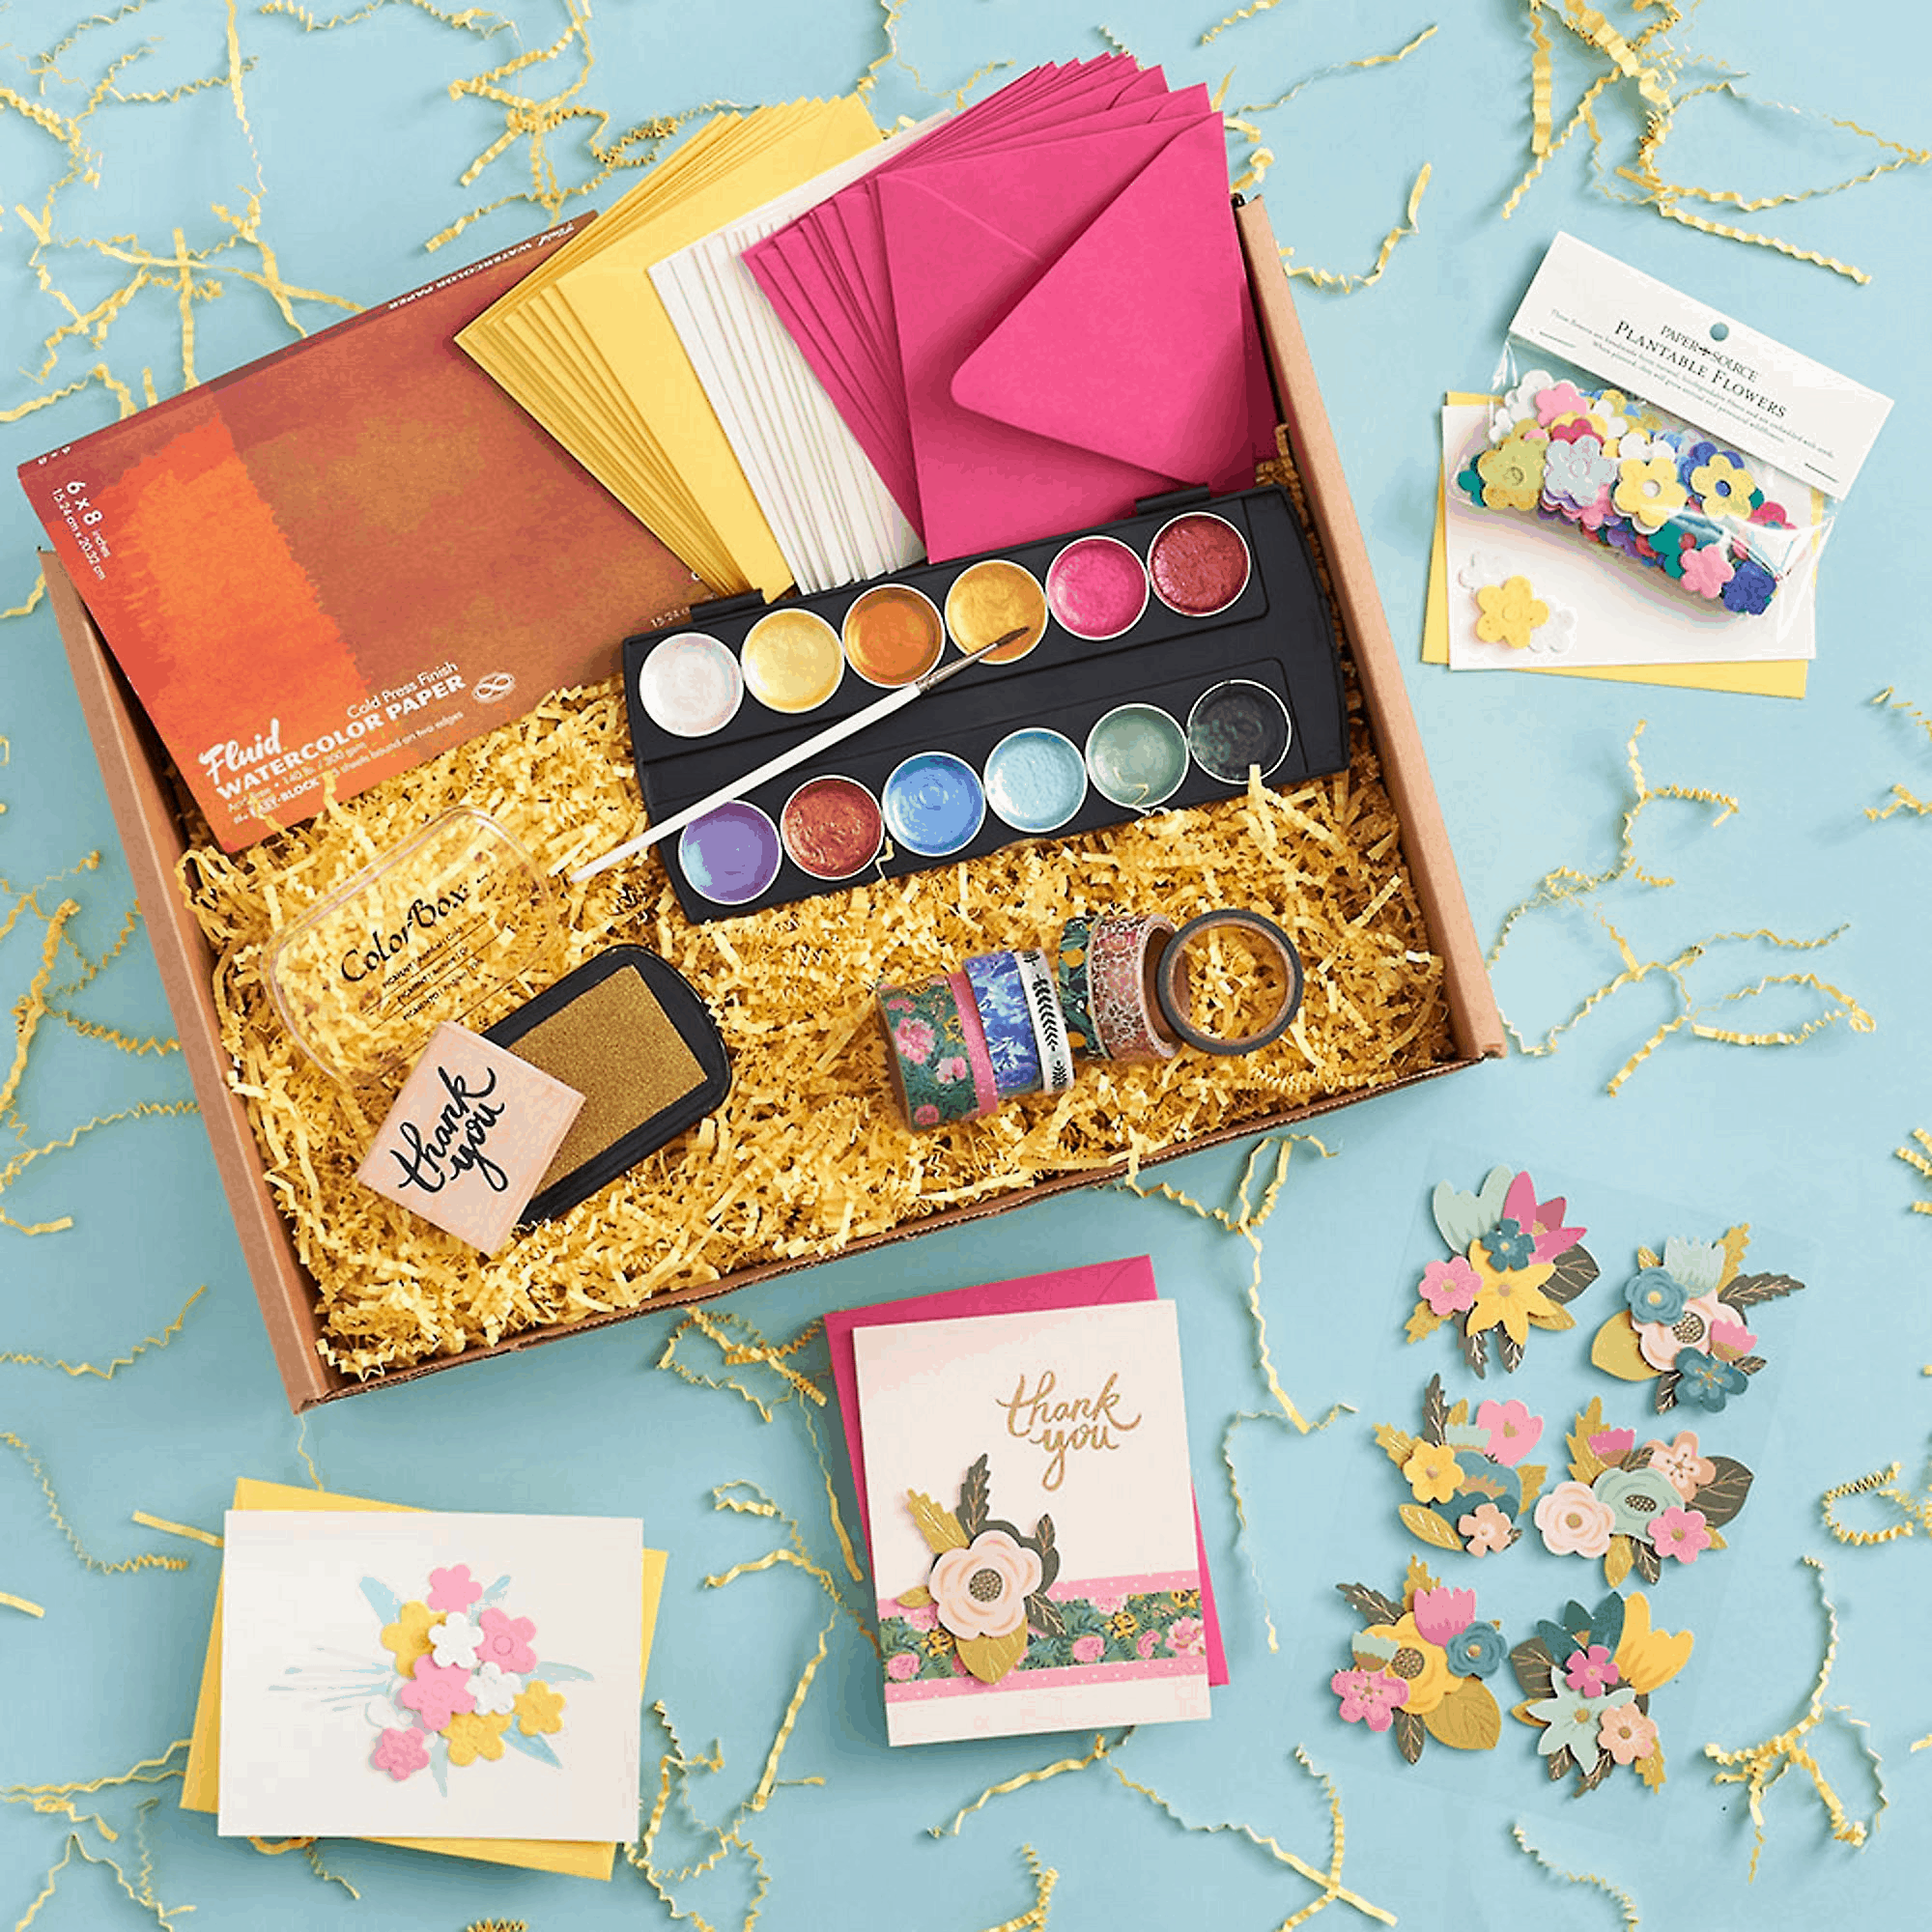 Paper Source Watercolor Floral Creativity Box Available Now + Full Spoilers!